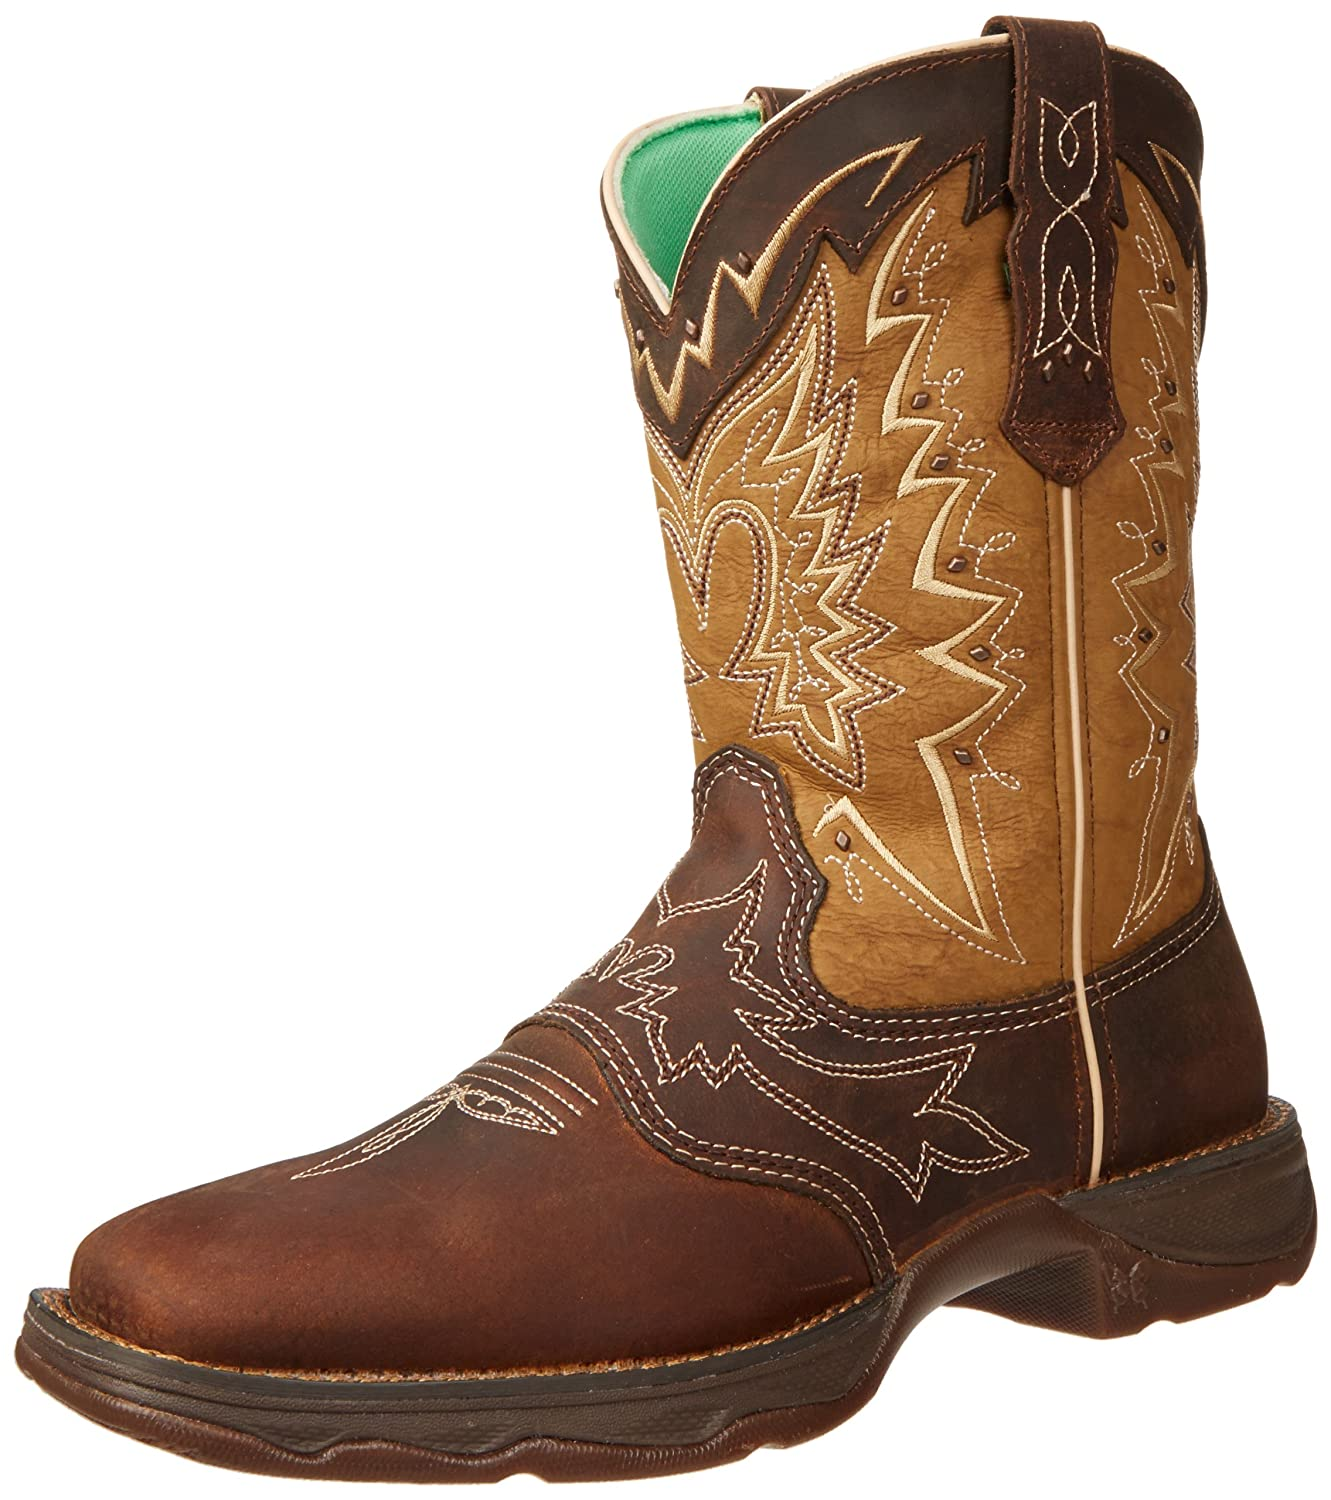 Durango Women's RD4424 Boot B006MX5A7M 11 B(M) US|Nicotine/Brown